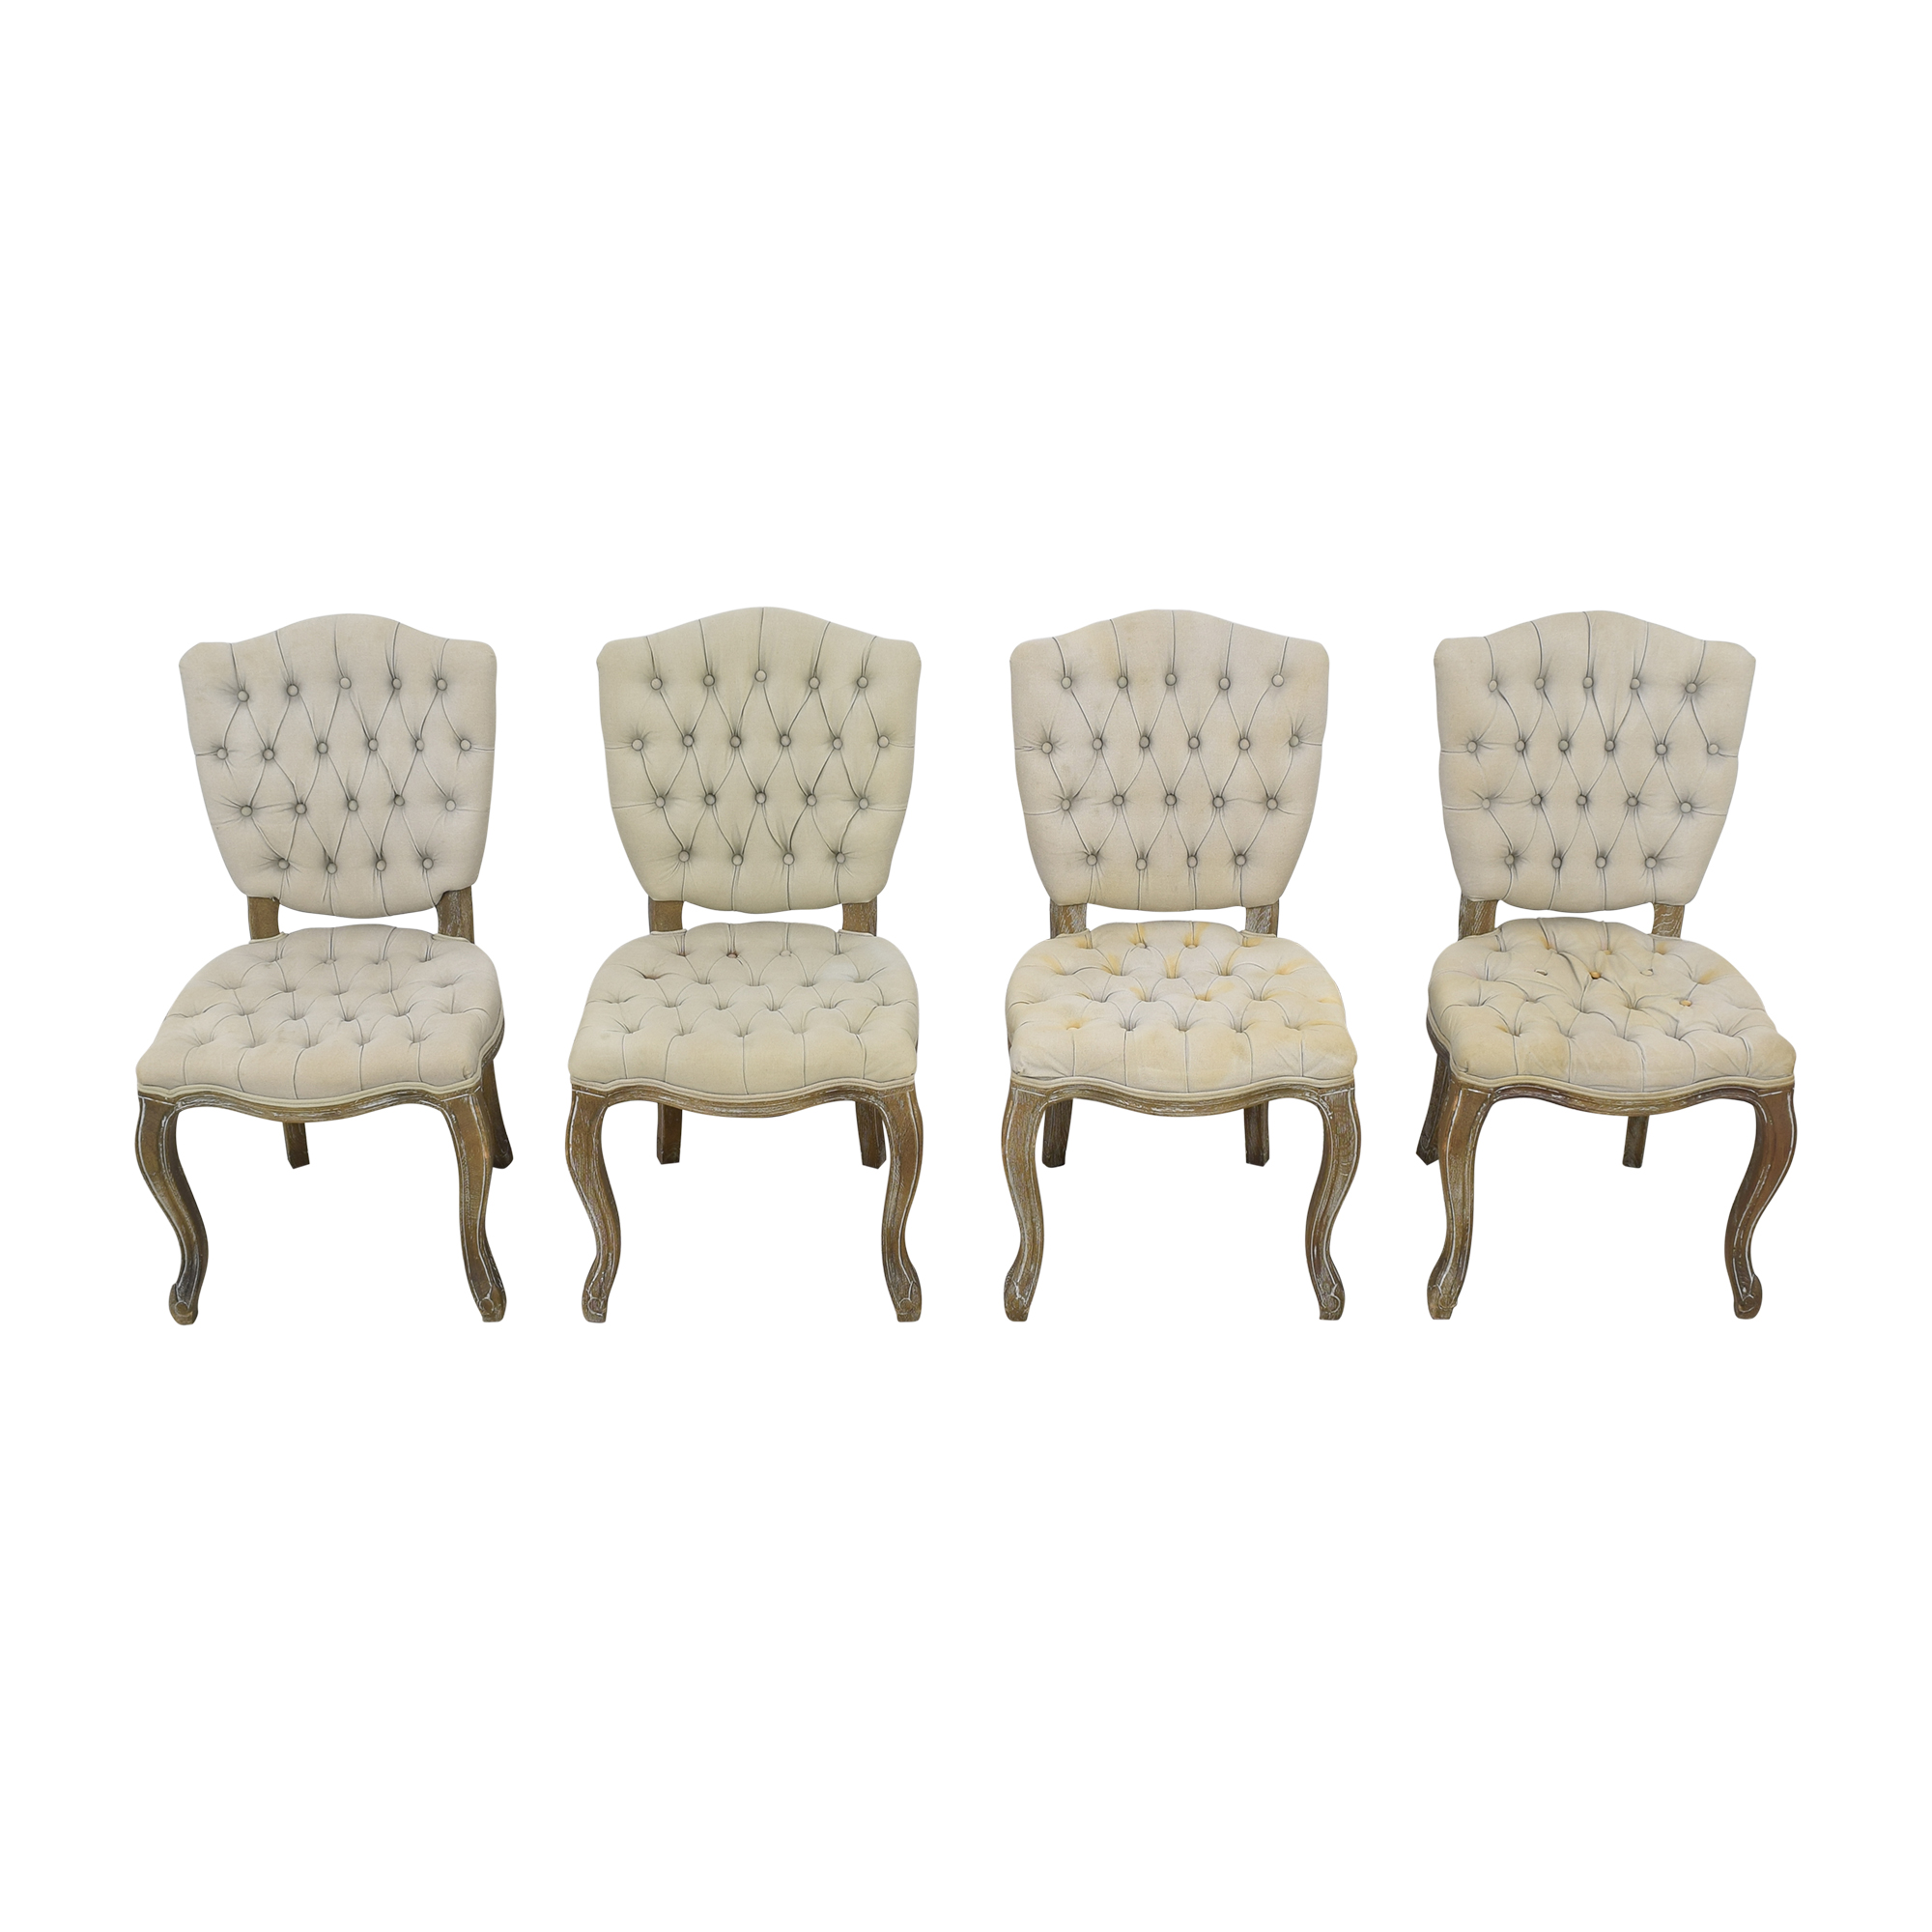 Arhaus Arhaus Country French Tufted Dining Chairs discount